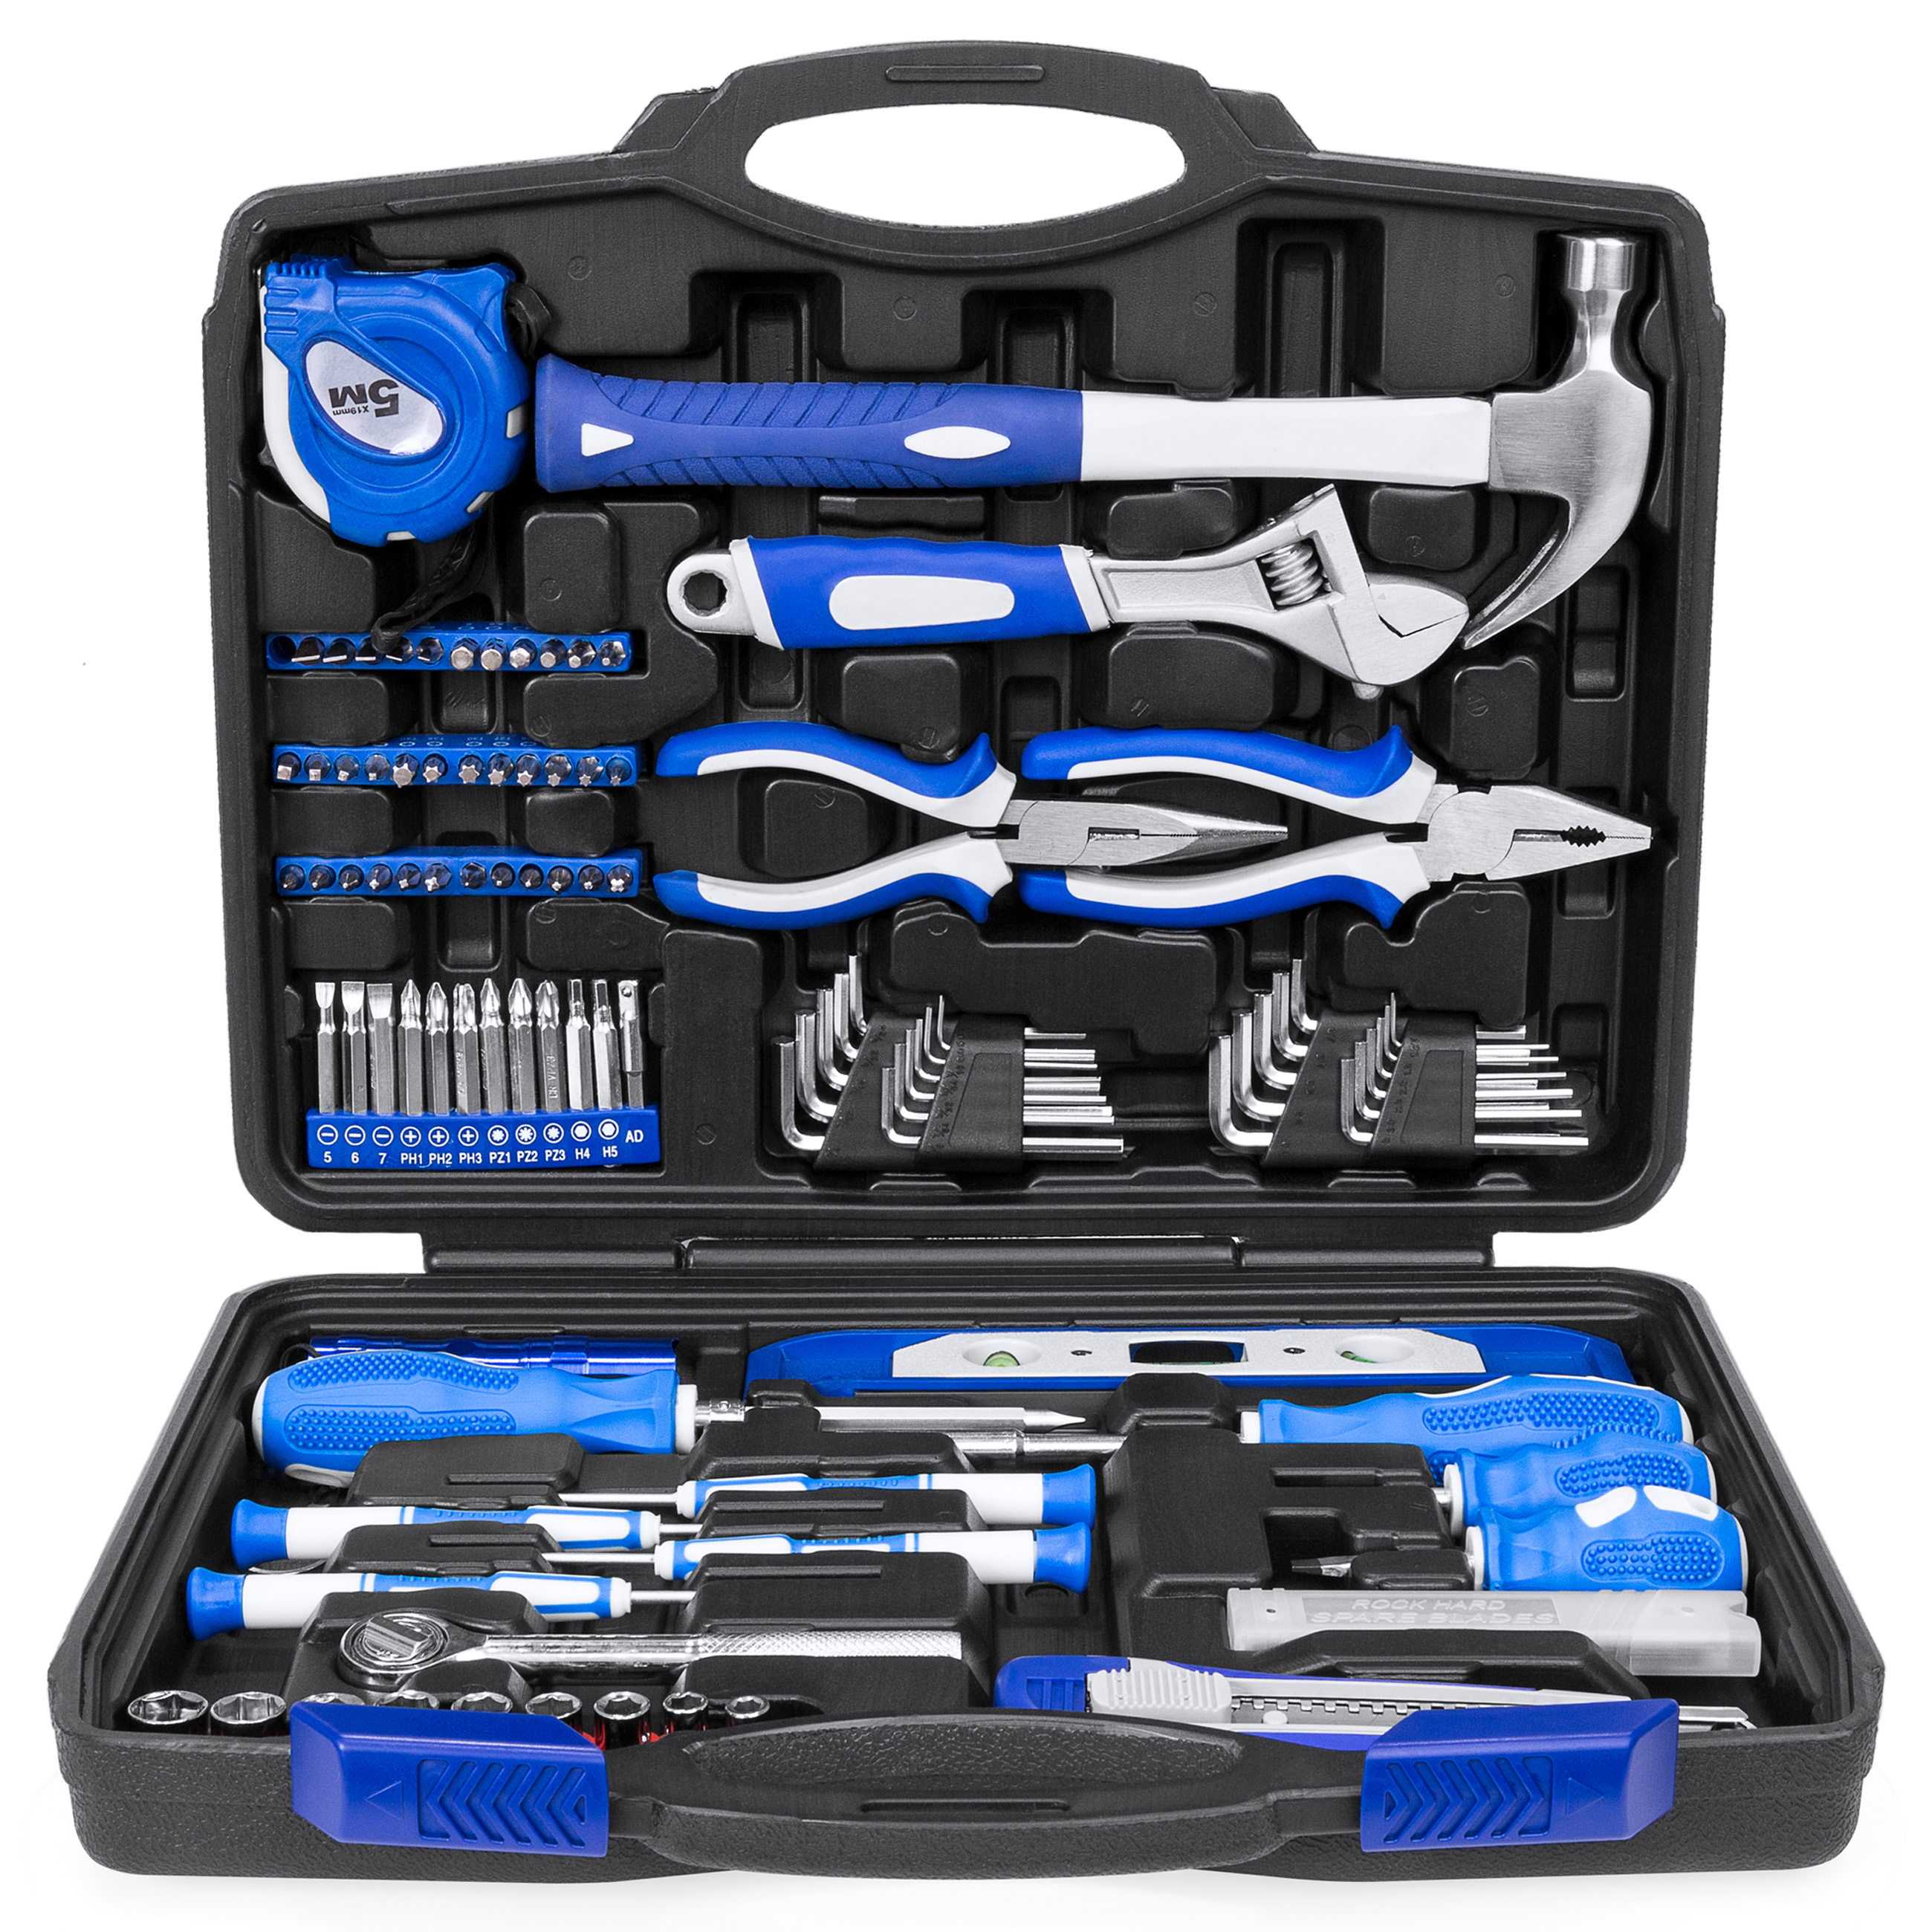 Best Choice Products 108-Piece Home Repair Tool Kit w/ Toolbox Storage Case, Complete Household Set